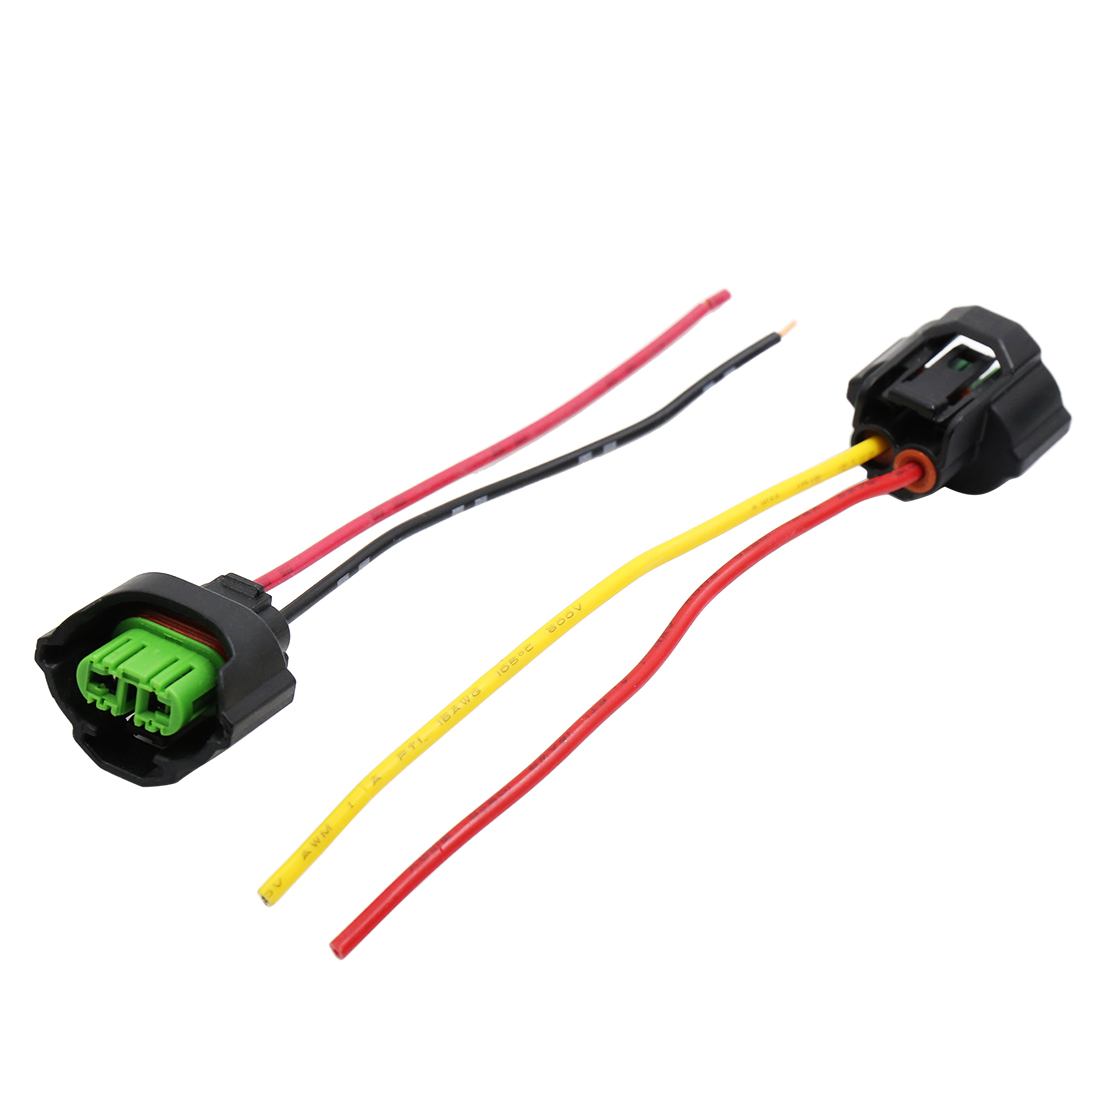 hight resolution of 2pcs dc 12v wire harness socket car headlight bulb extension adapter connector